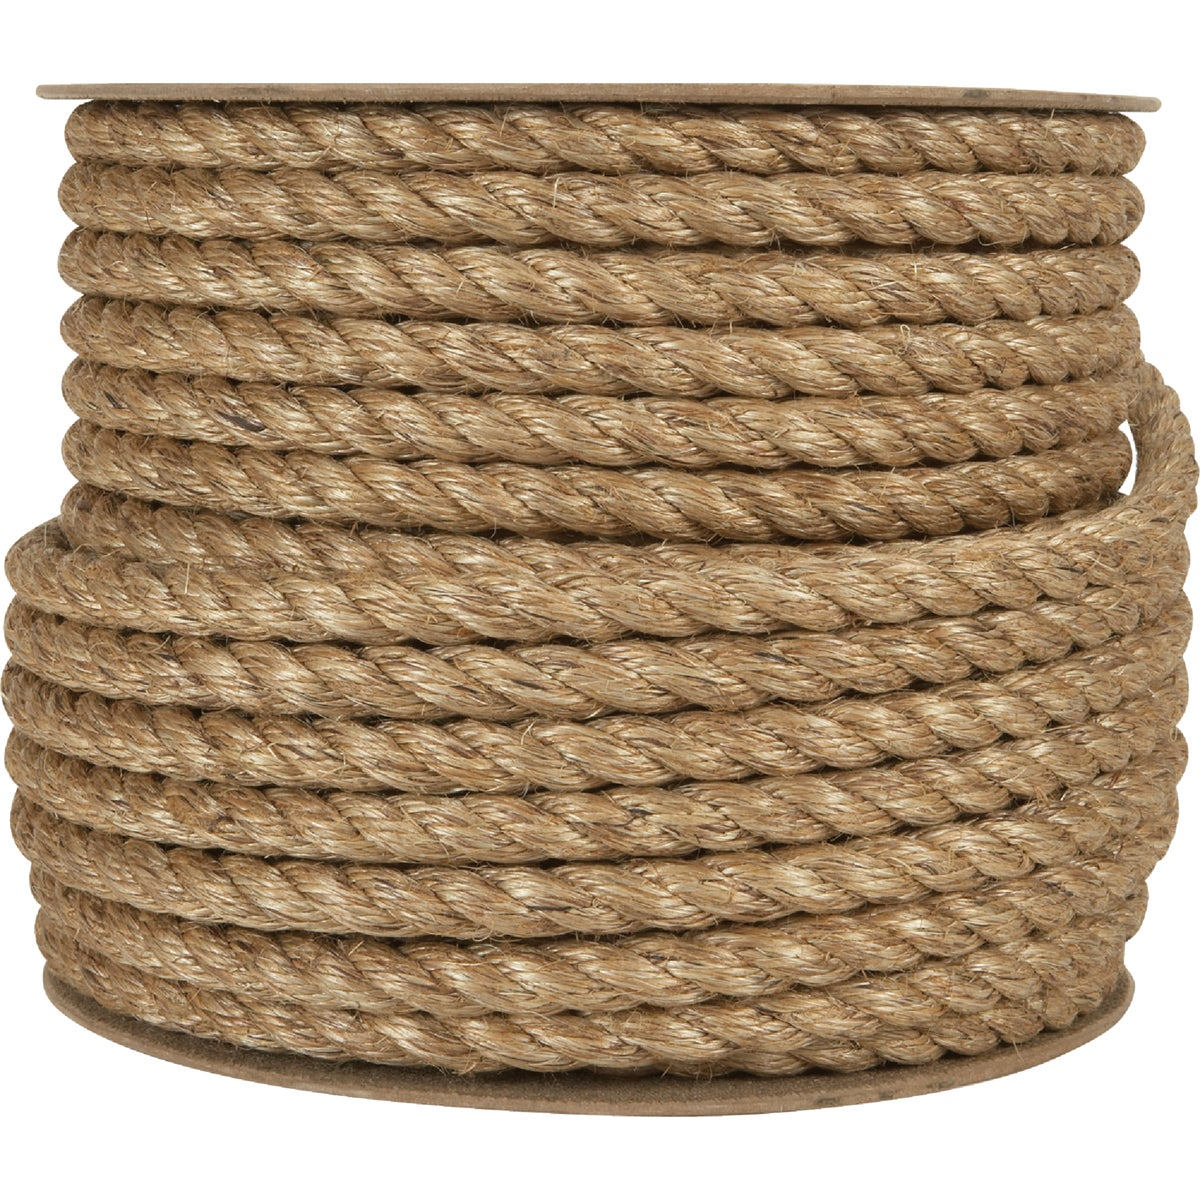 "5/8""X200' MANILA ROPE - 705188 by Do it Best"